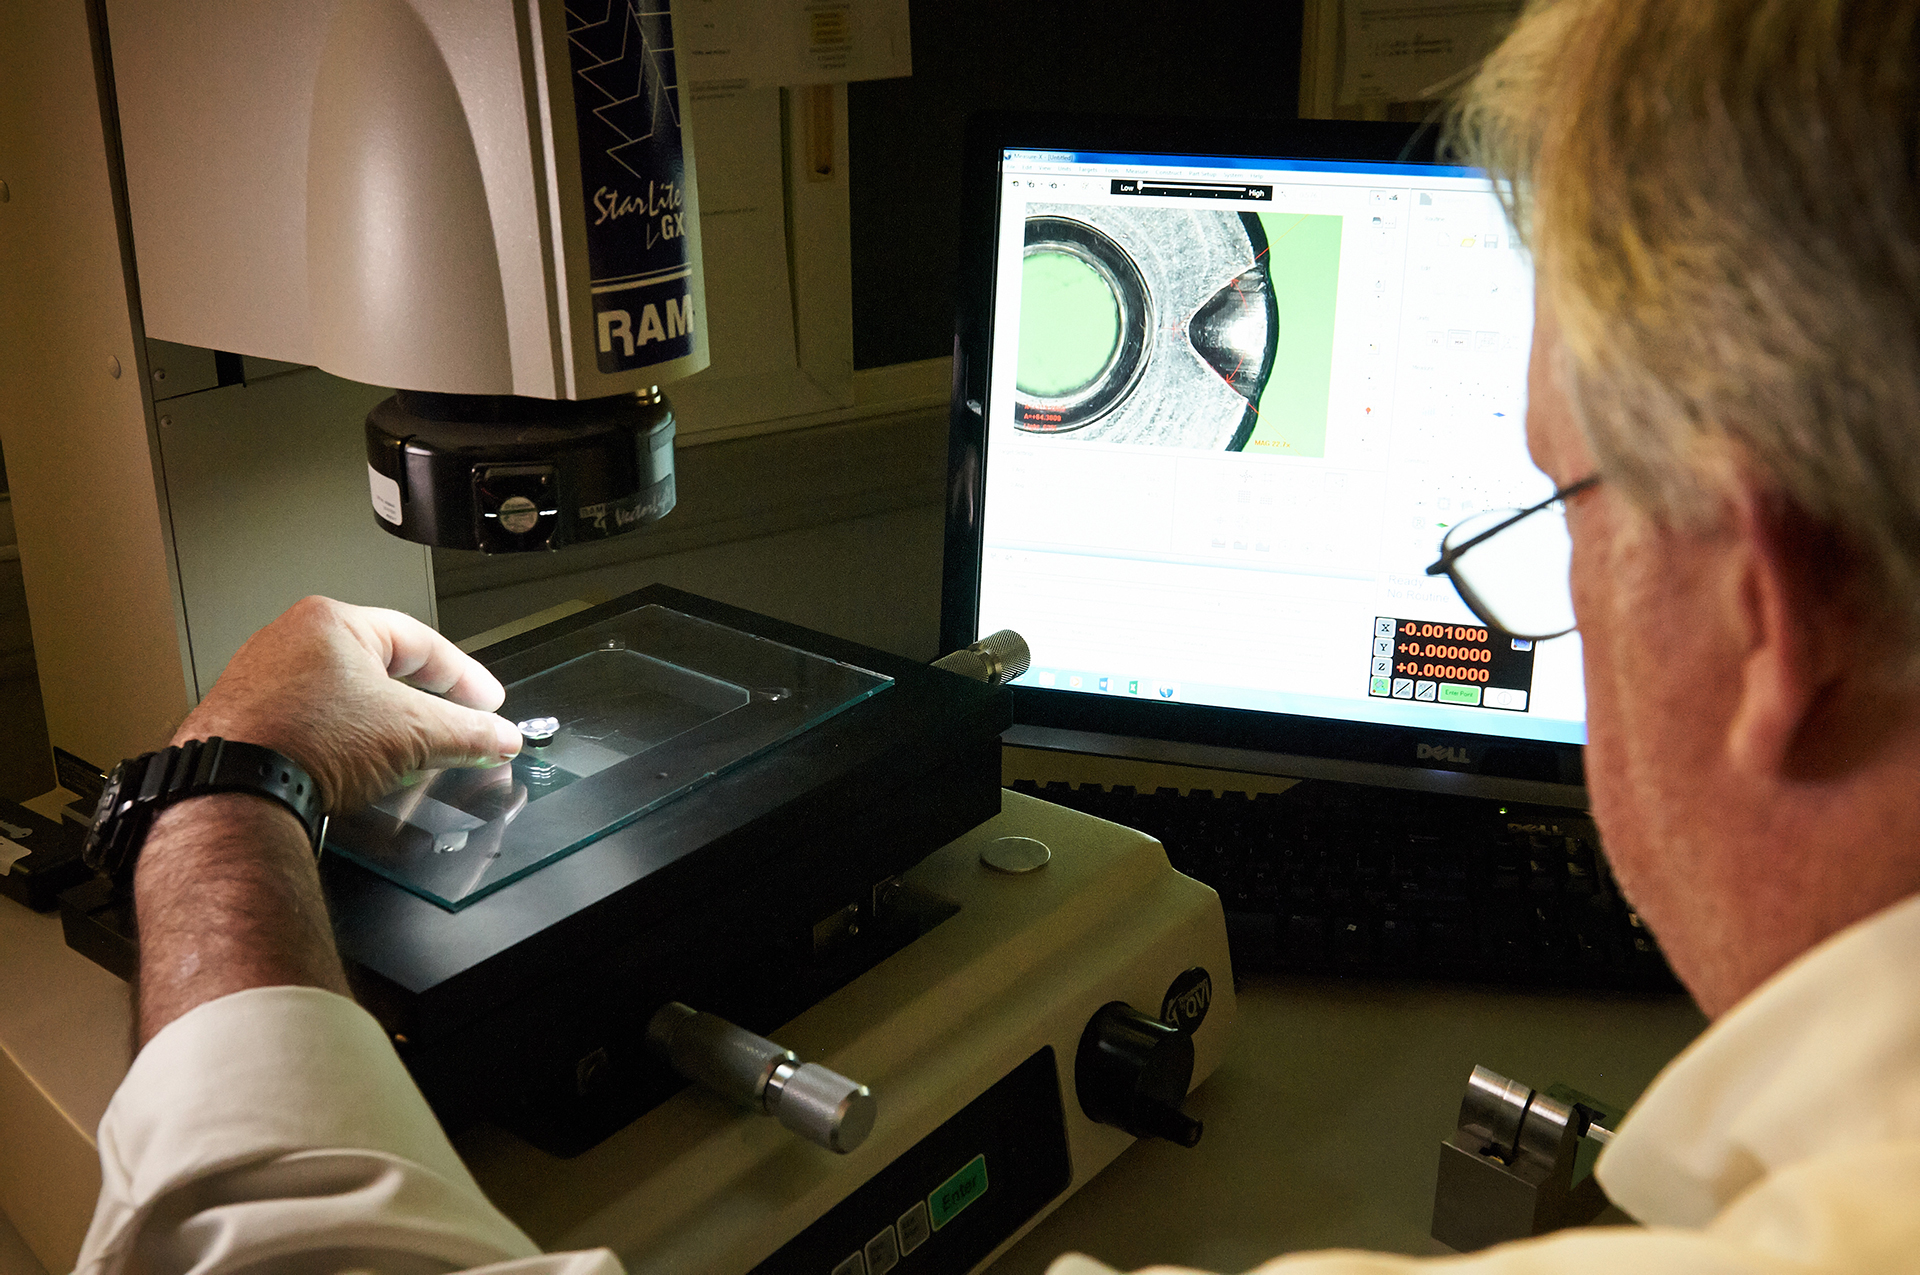 Ramco Quality Technician utilizing Starlite™ Optical Measurement System